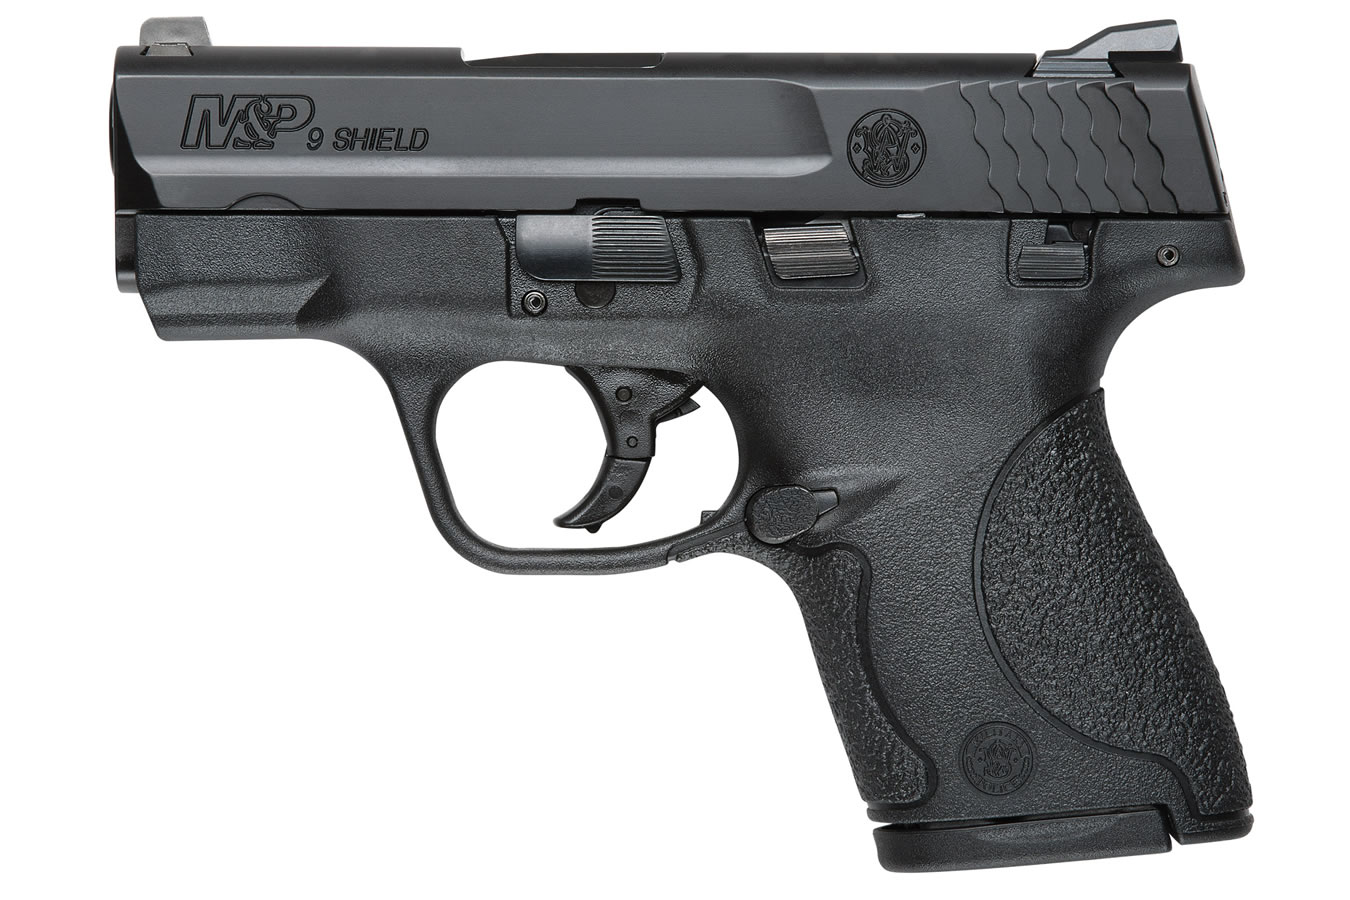 SMITH AND WESSON MP9 SHIELD 9MM PISTOL